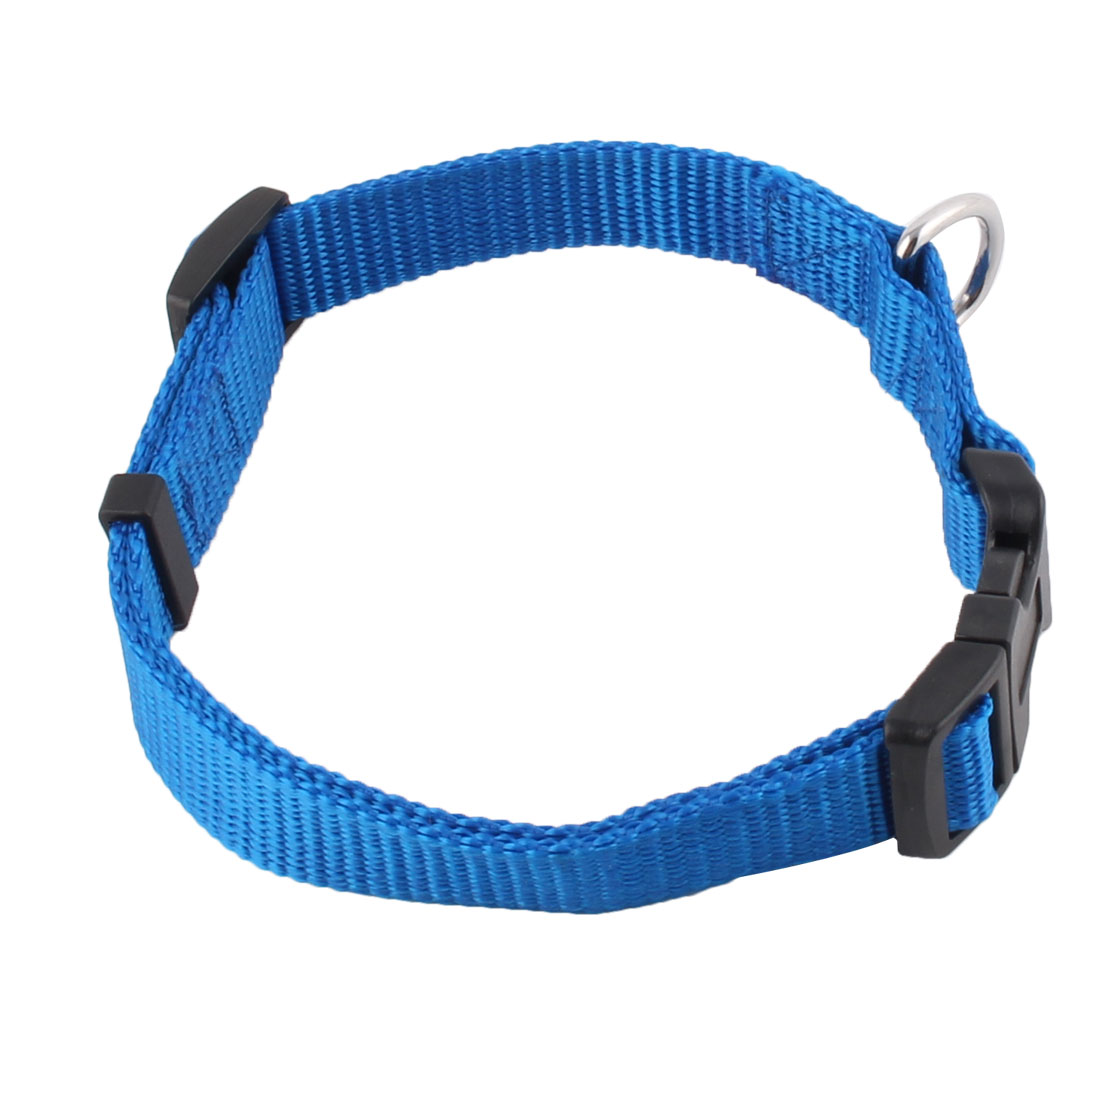 Nylon Adjustable Safty Buckle Neck Collar Strap Band Blue for Pet Dog Puppy